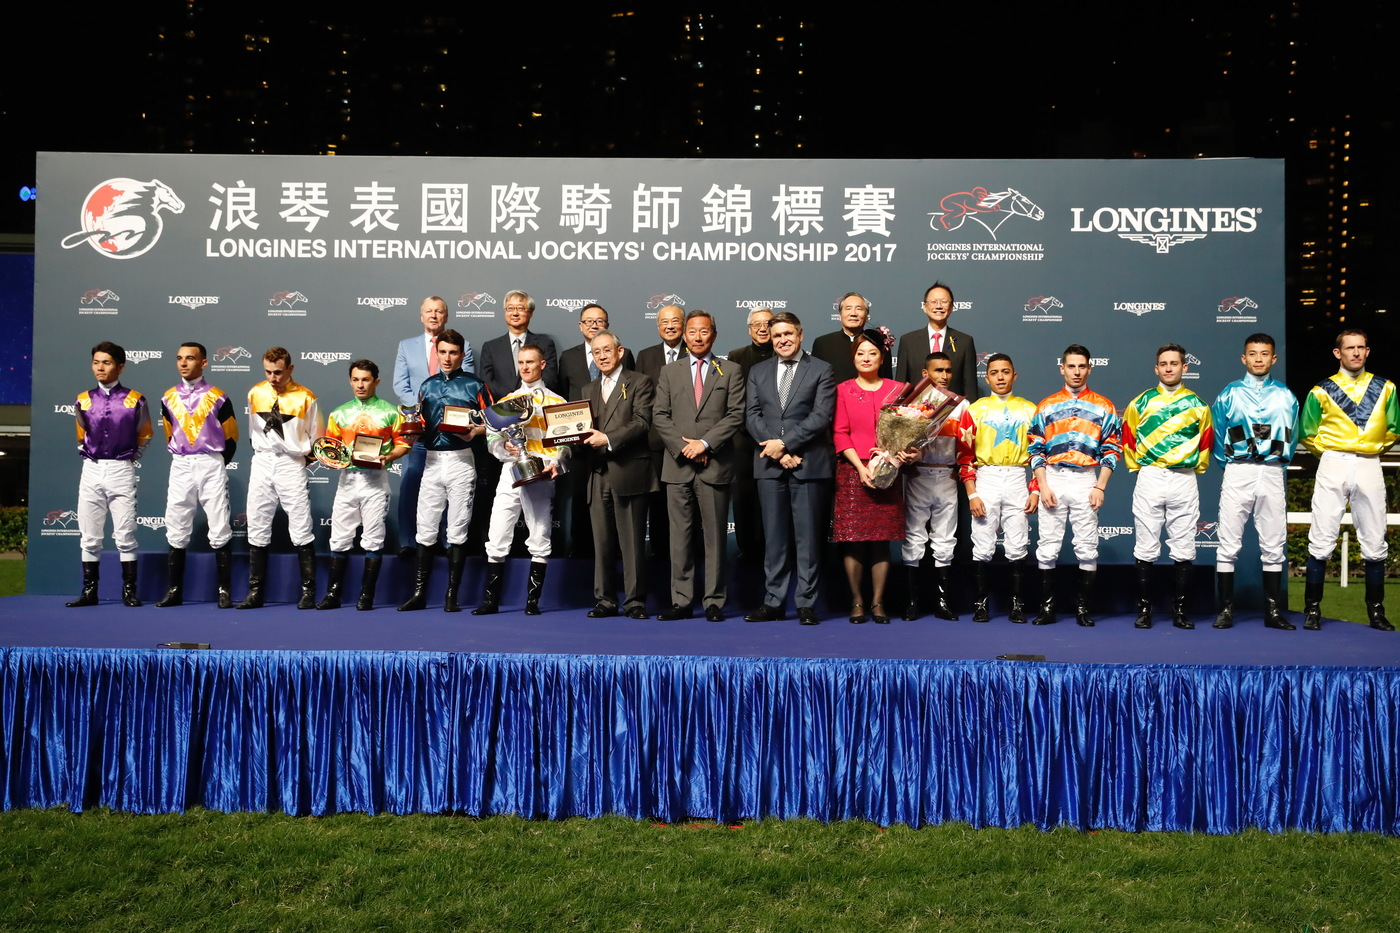 Longines Flat Racing Event:  The Longines International Jockeys' Championship: a celebration of the world's best jockeys  5